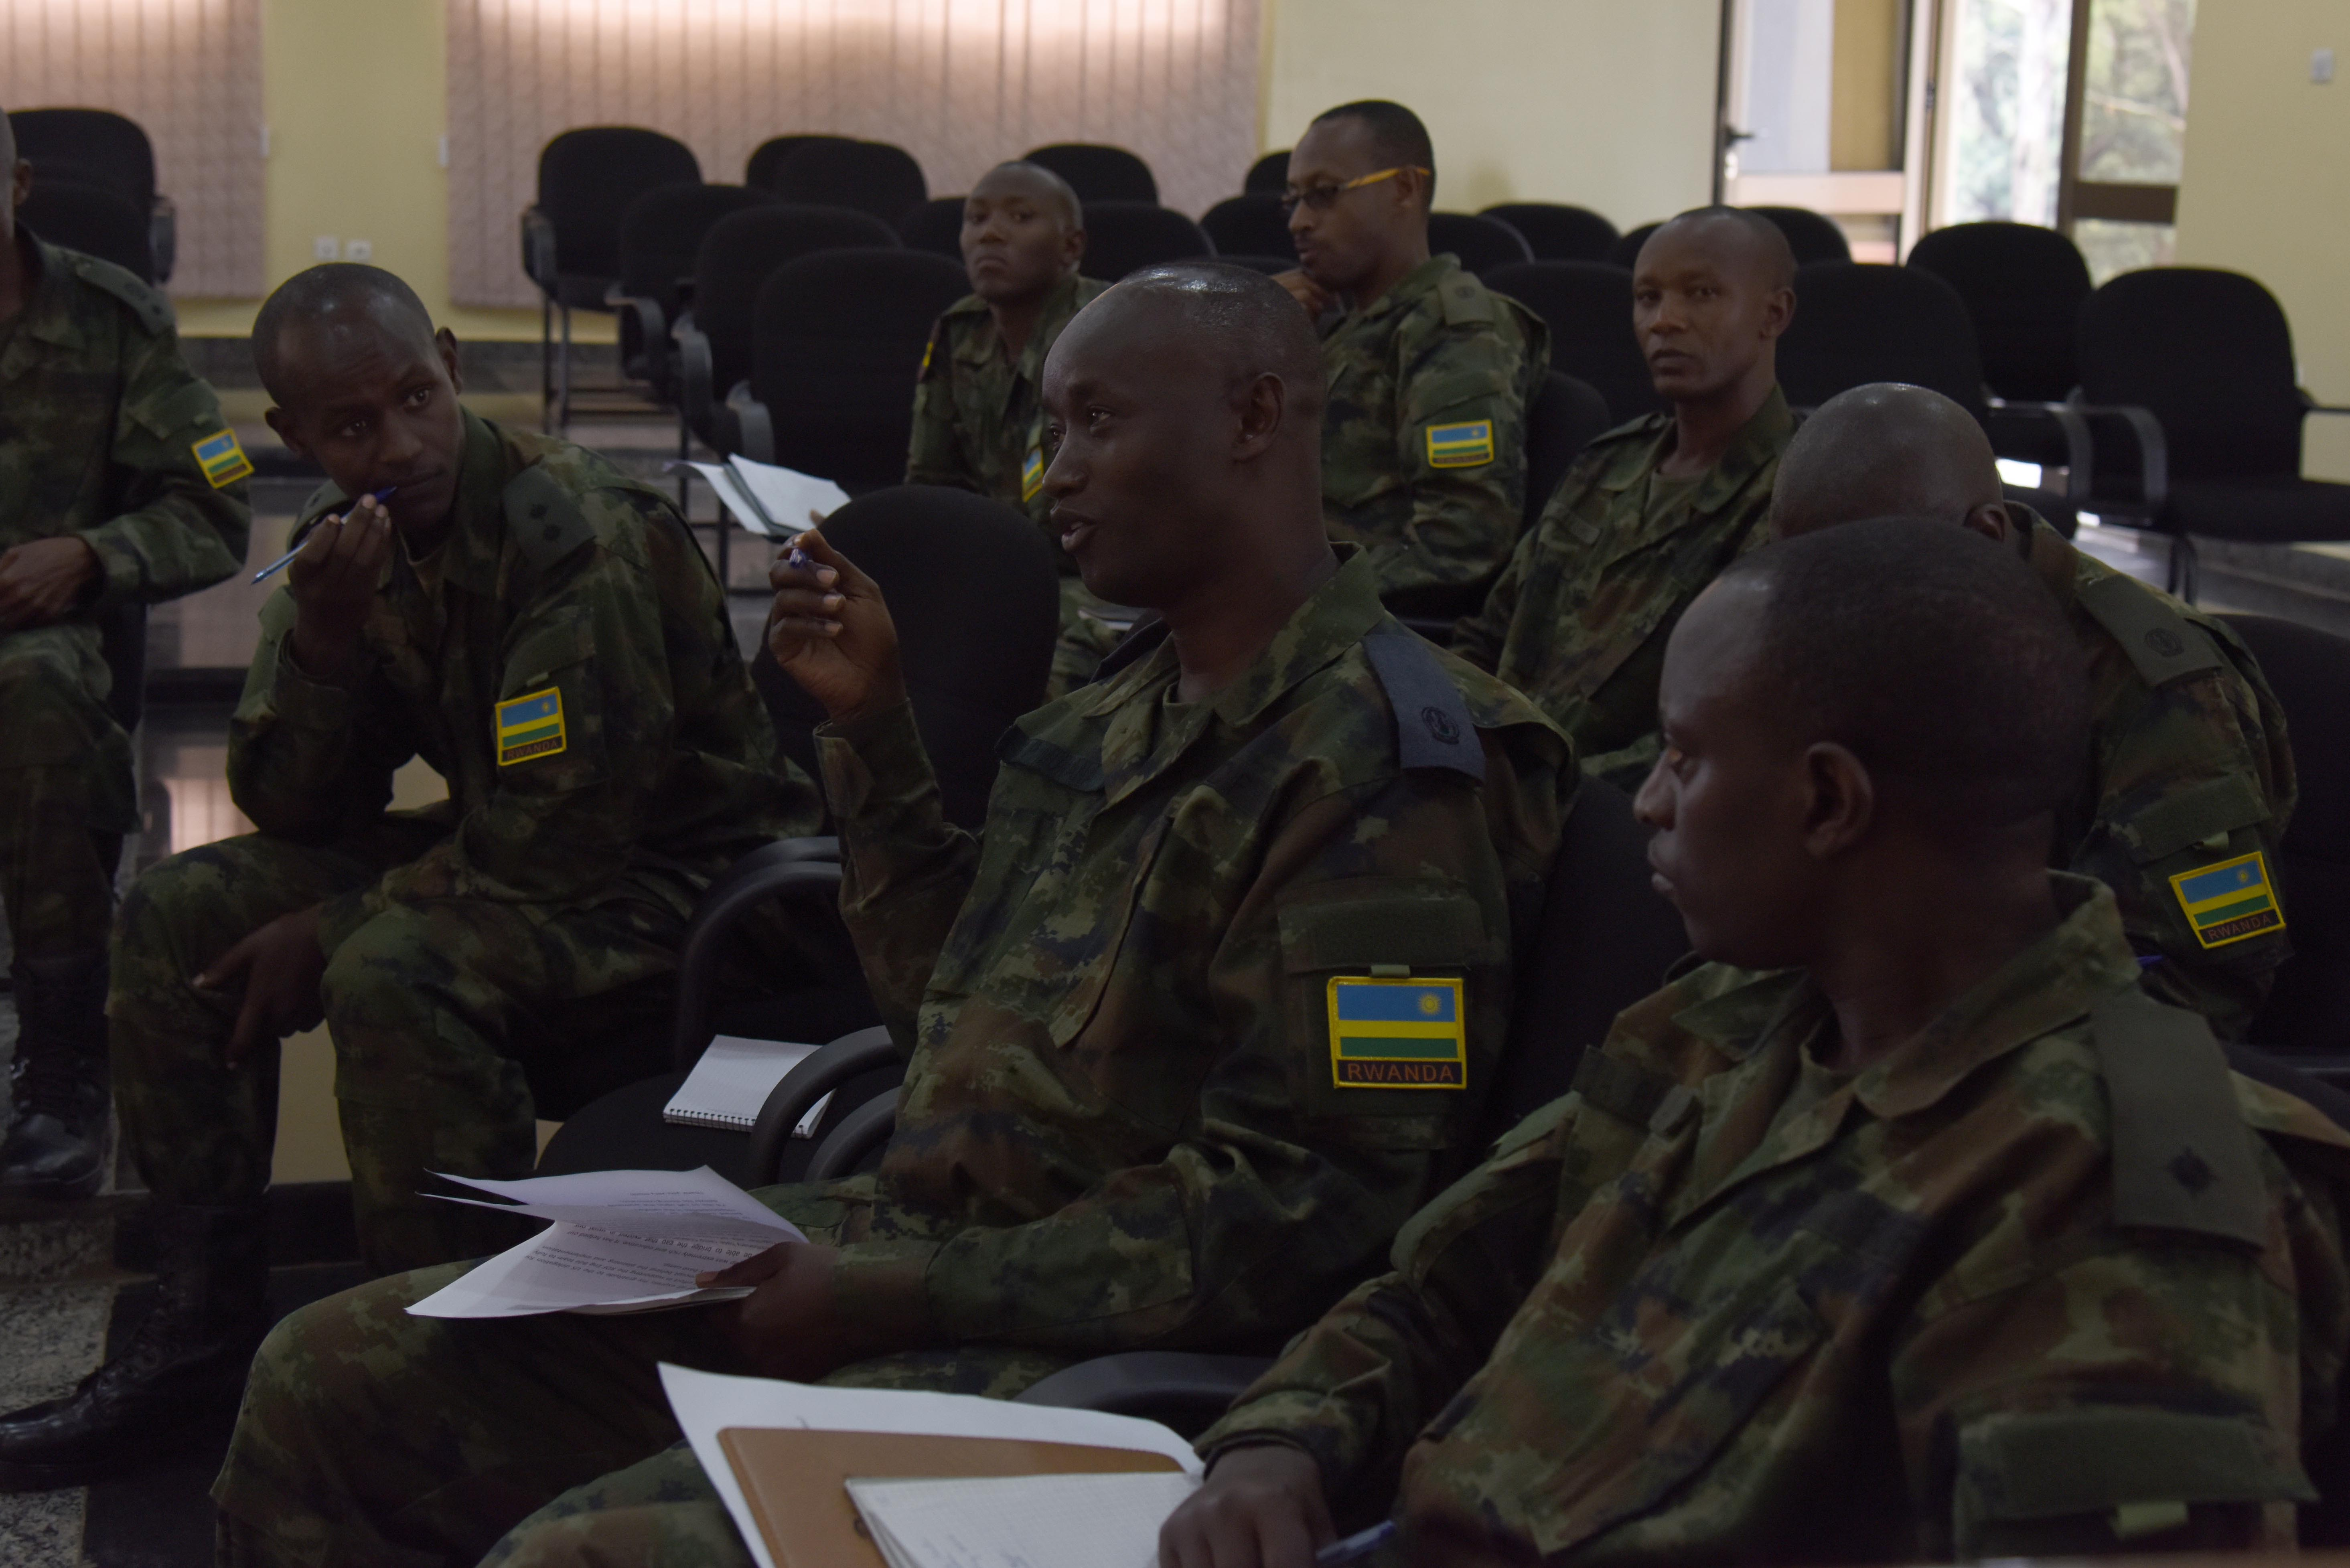 Members of the Rwandan Defense Force ask questions during a military-to-military engagement at the RDF Engineering Brigade Headquarters near Kigali, Rwanda, Dec. 17, 2015. RDF engineers from different specialties gathered to share their common practices of planning expeditionary camps with engineers from Combined Joint Task Force-Horn of Africa. (U.S. Air Force photo by Staff Sgt. Victoria Sneed)